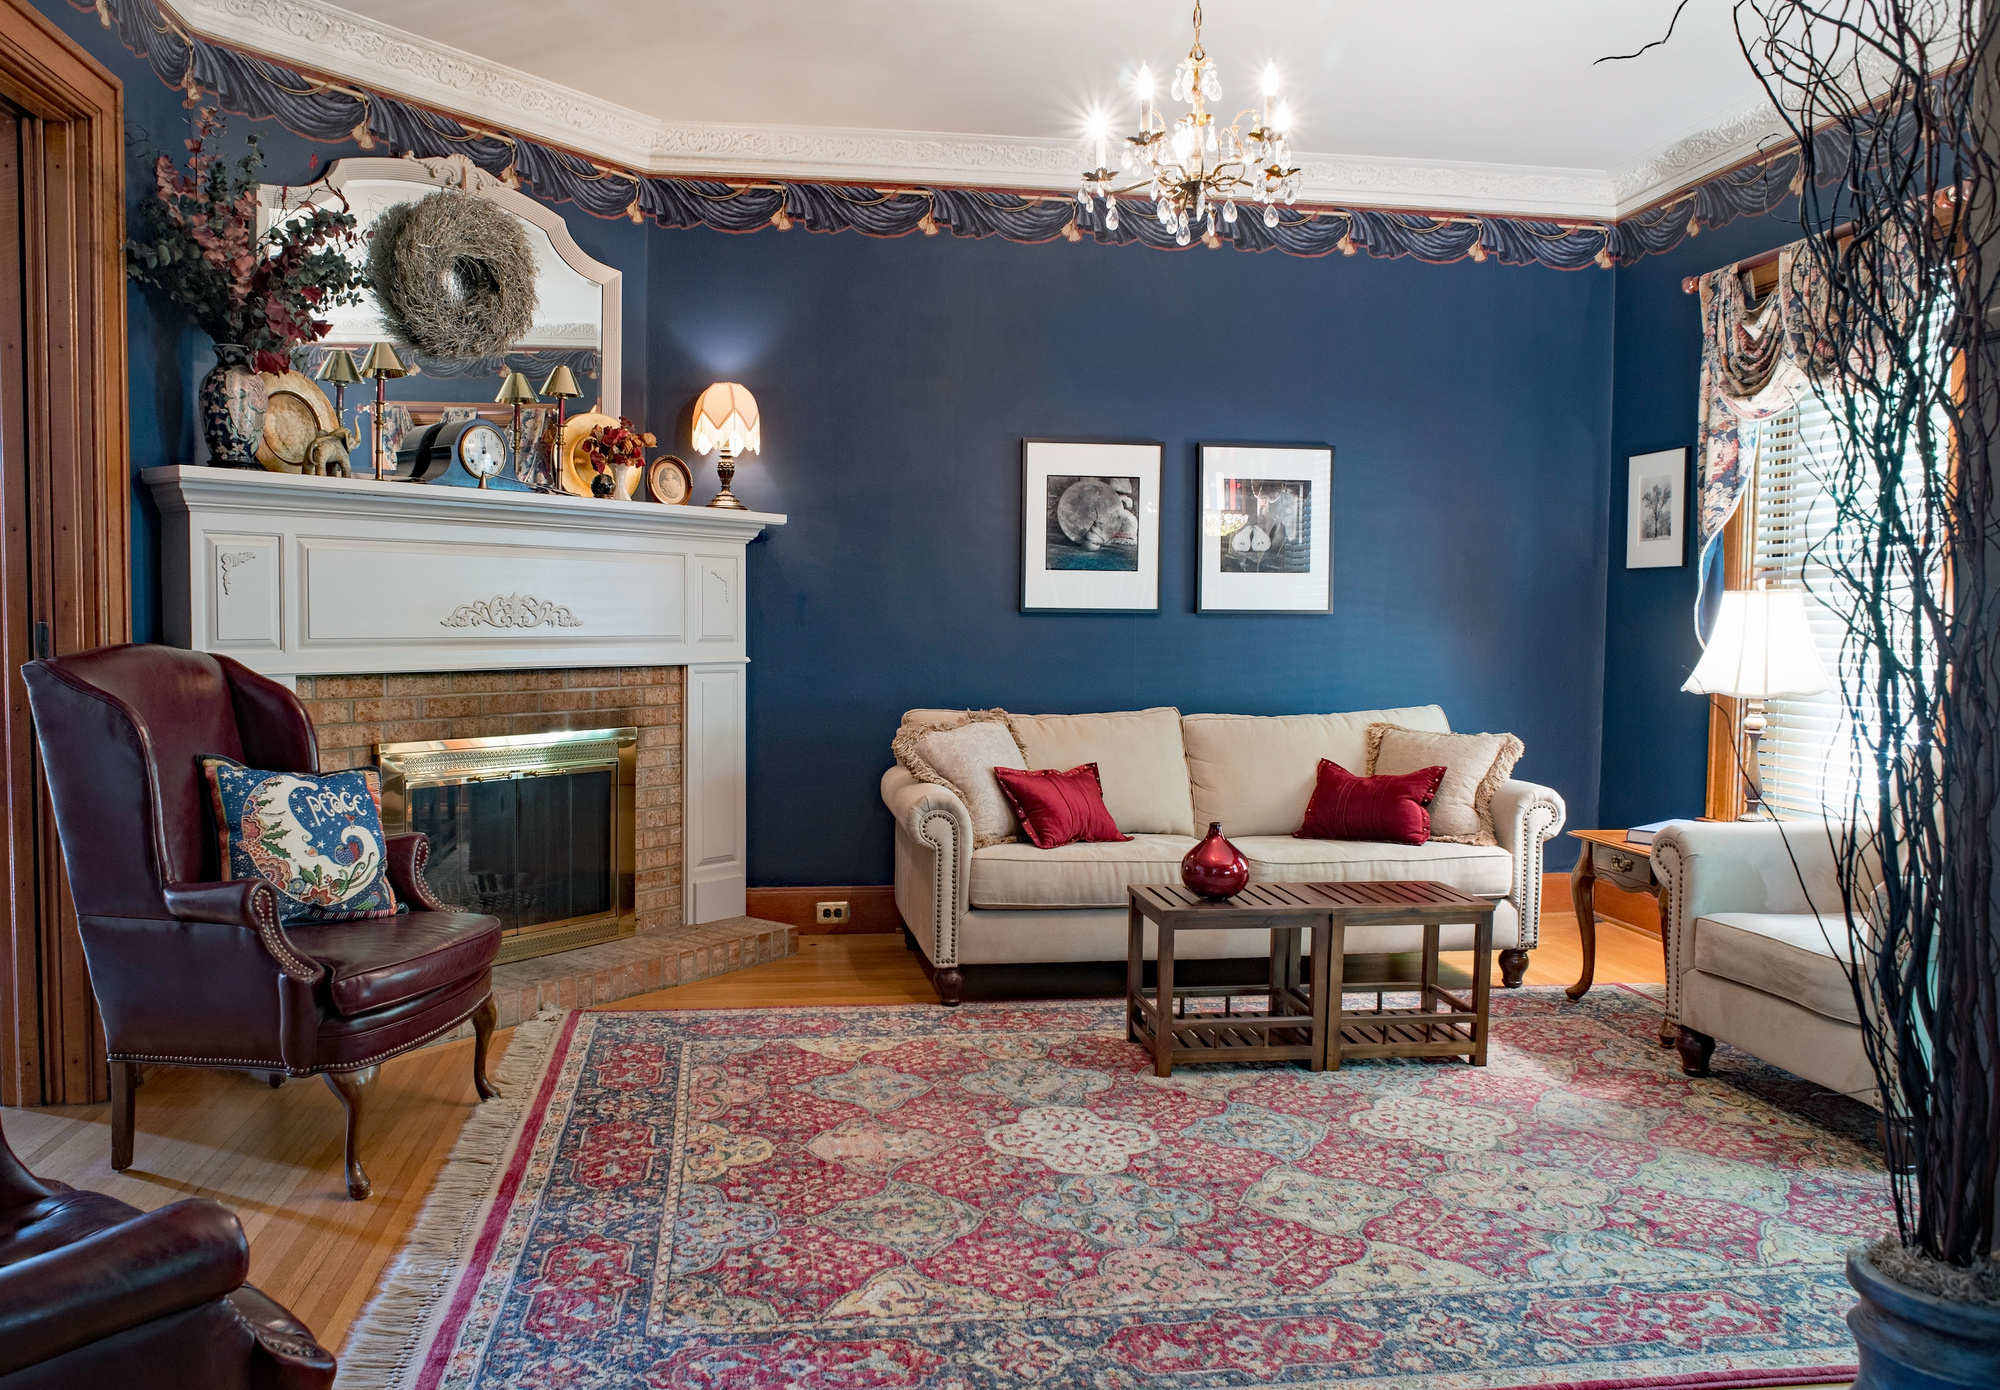 Top 9 Factors to Consider When Buying Area Rugs